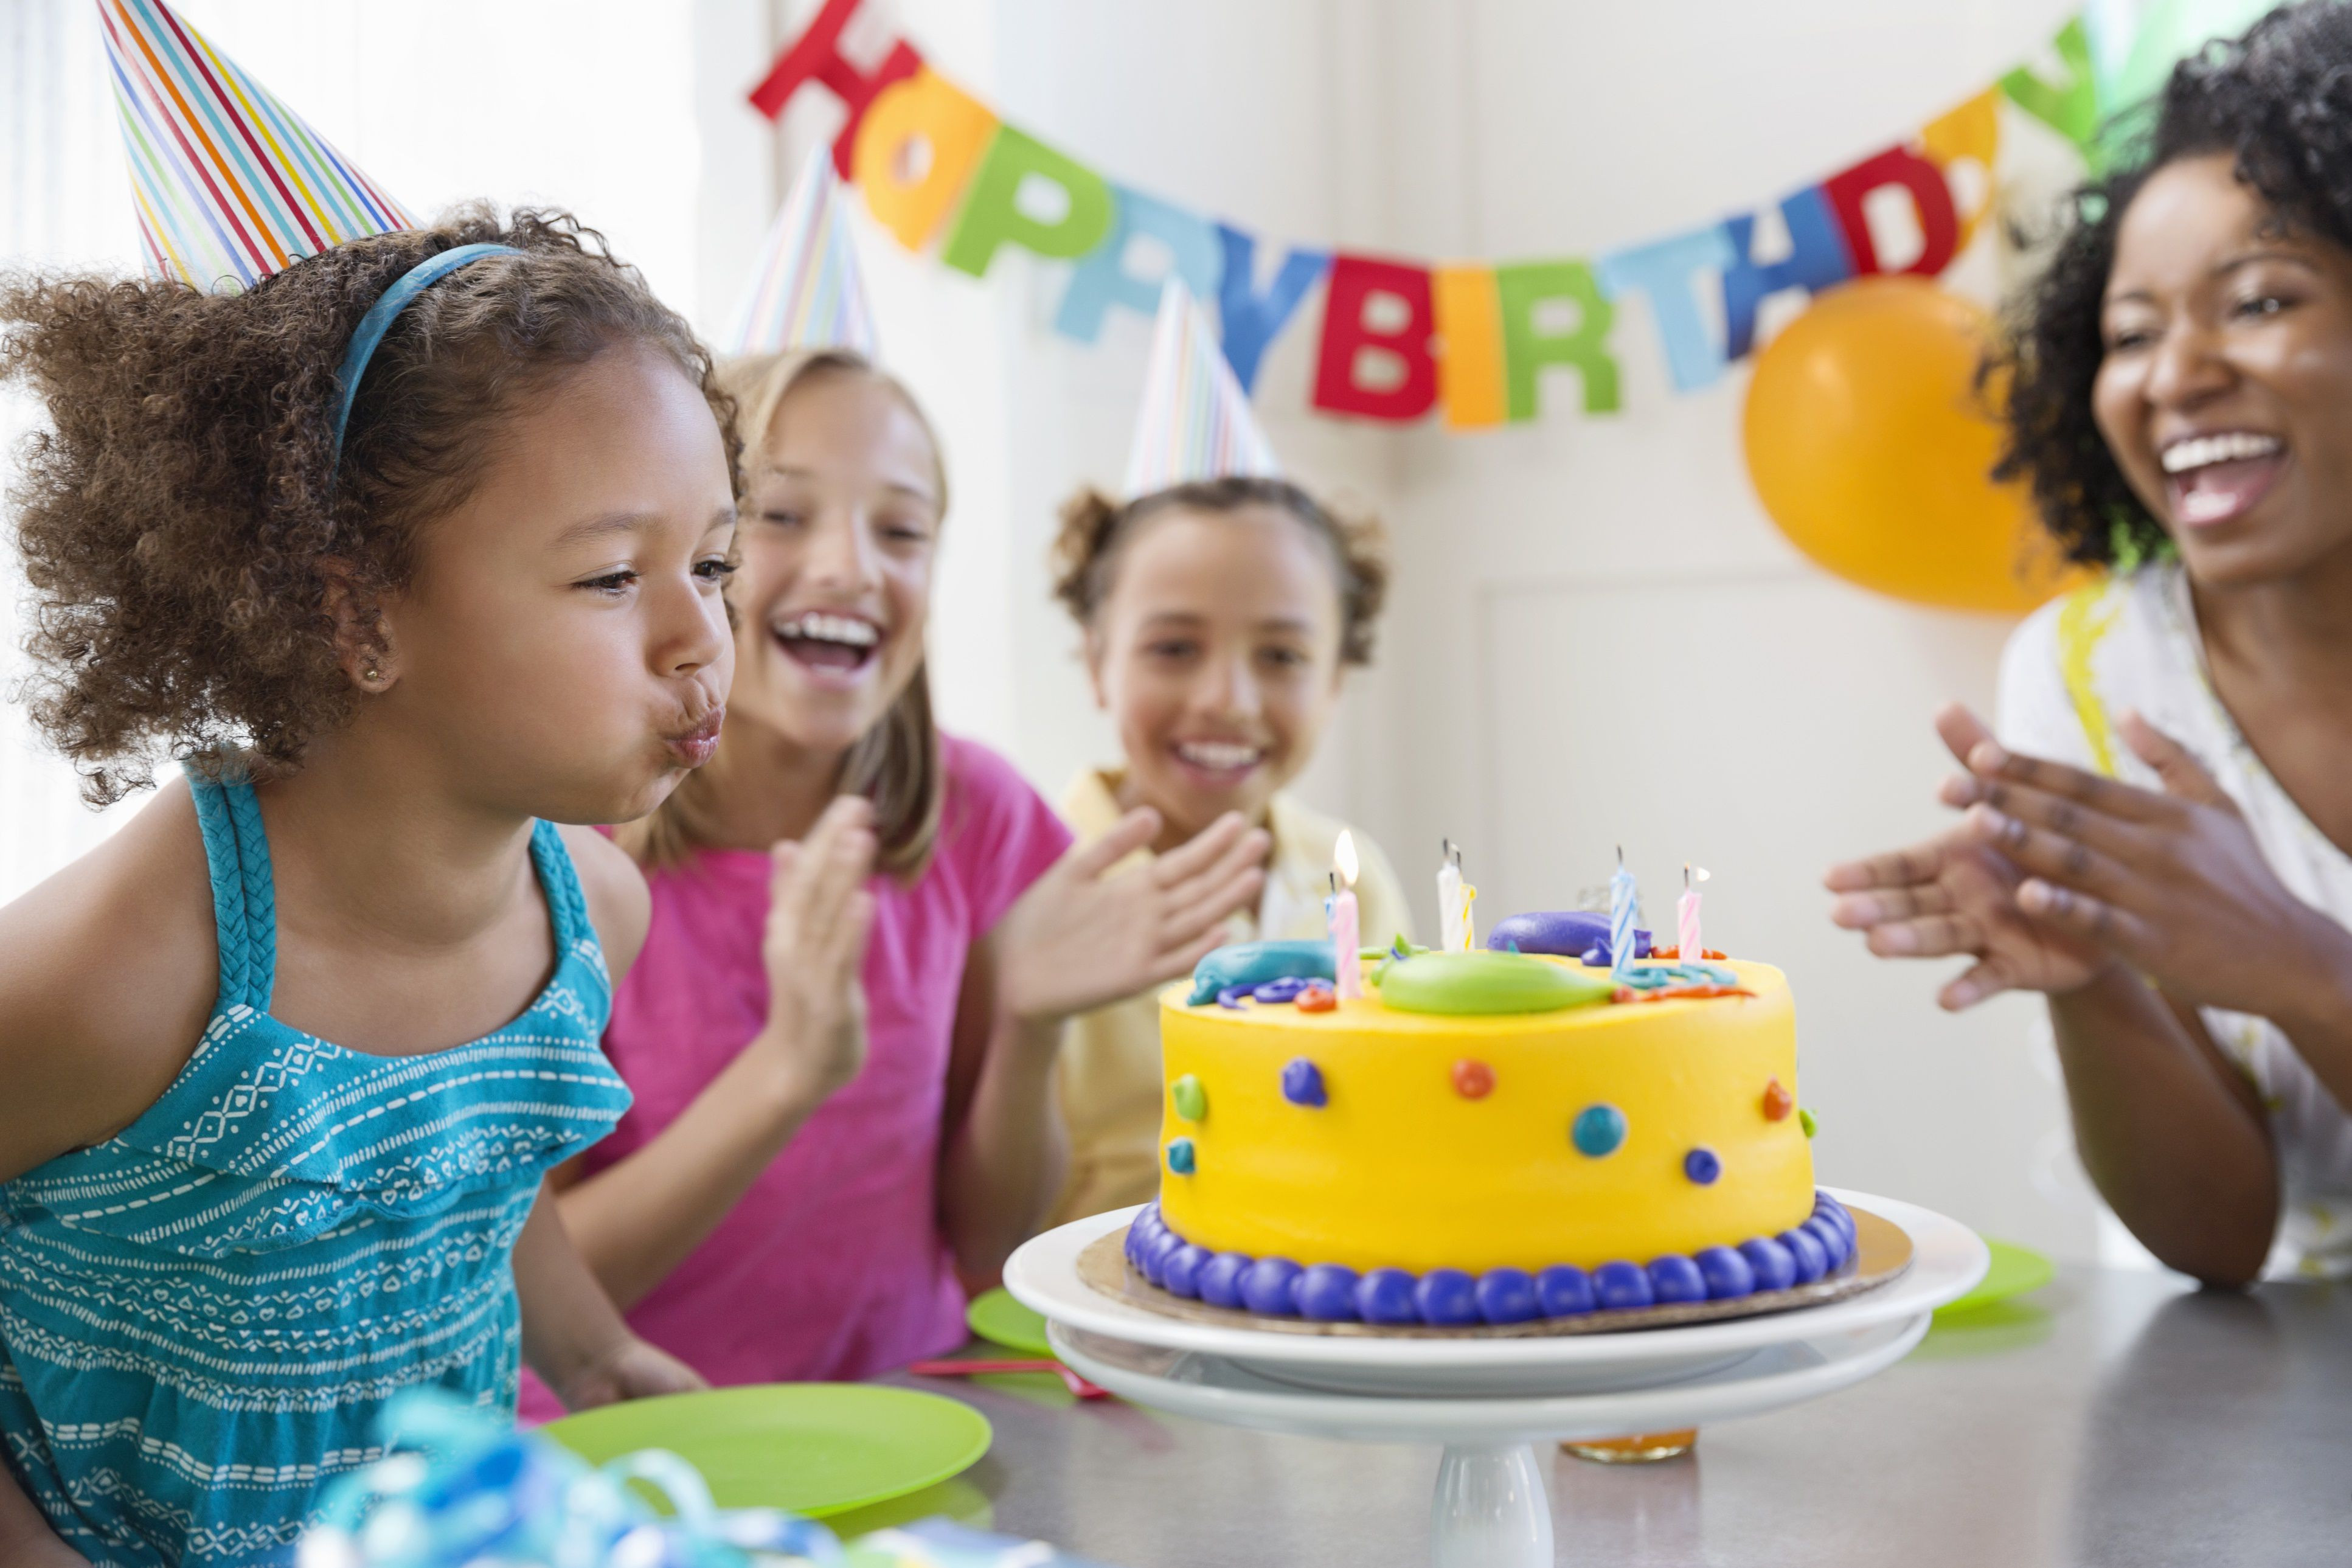 Best ideas about Place To Have A Kids Birthday Party . Save or Pin The Best Places for Children s Birthday Parties in Huntsville Now.